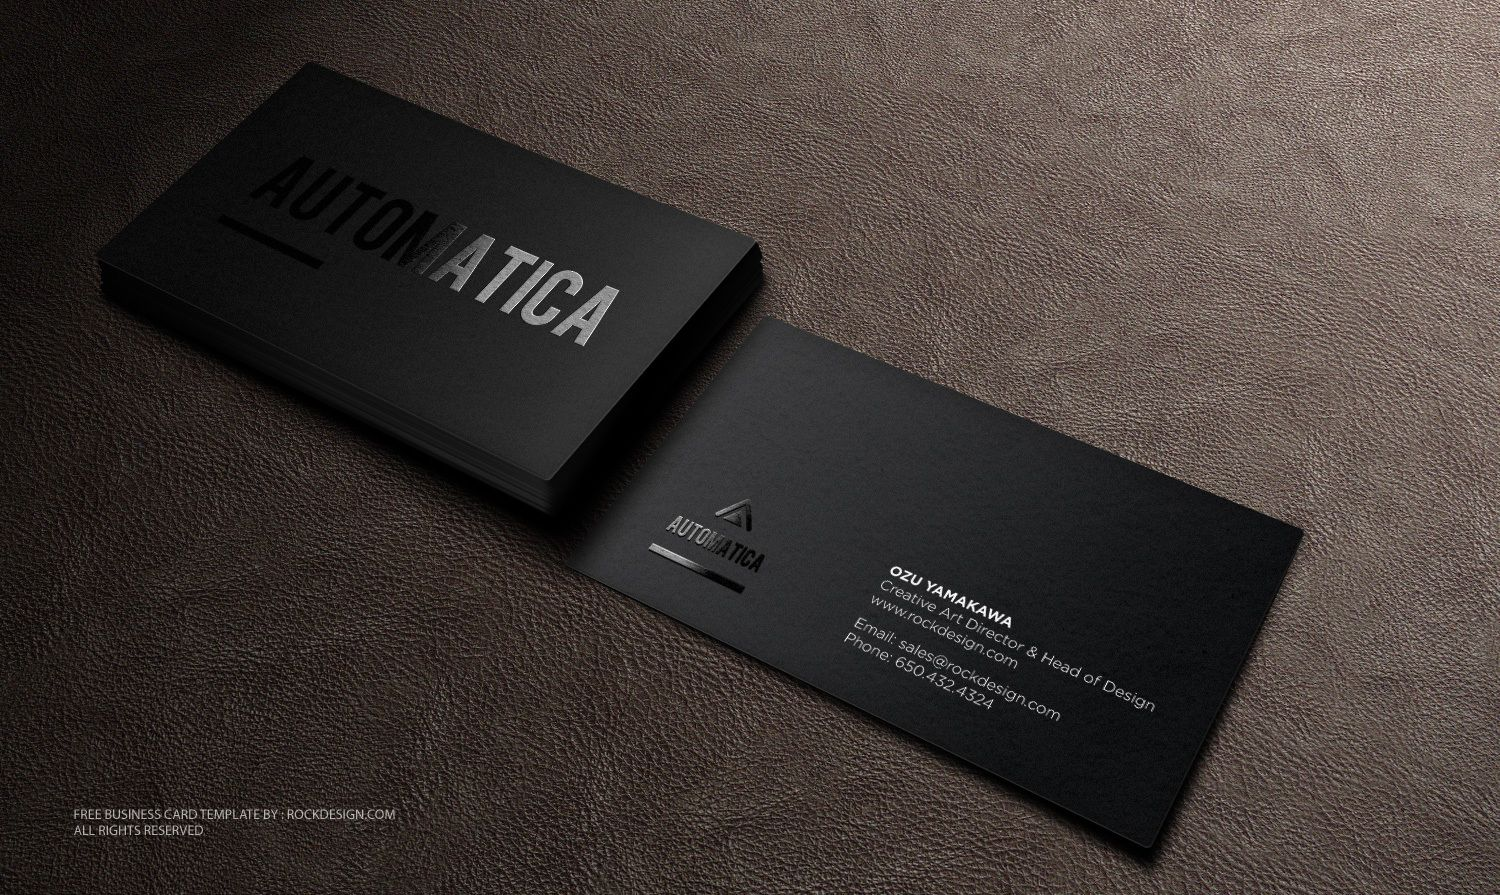 Black Business Card Template Download Free Design Templates - Download free business card template